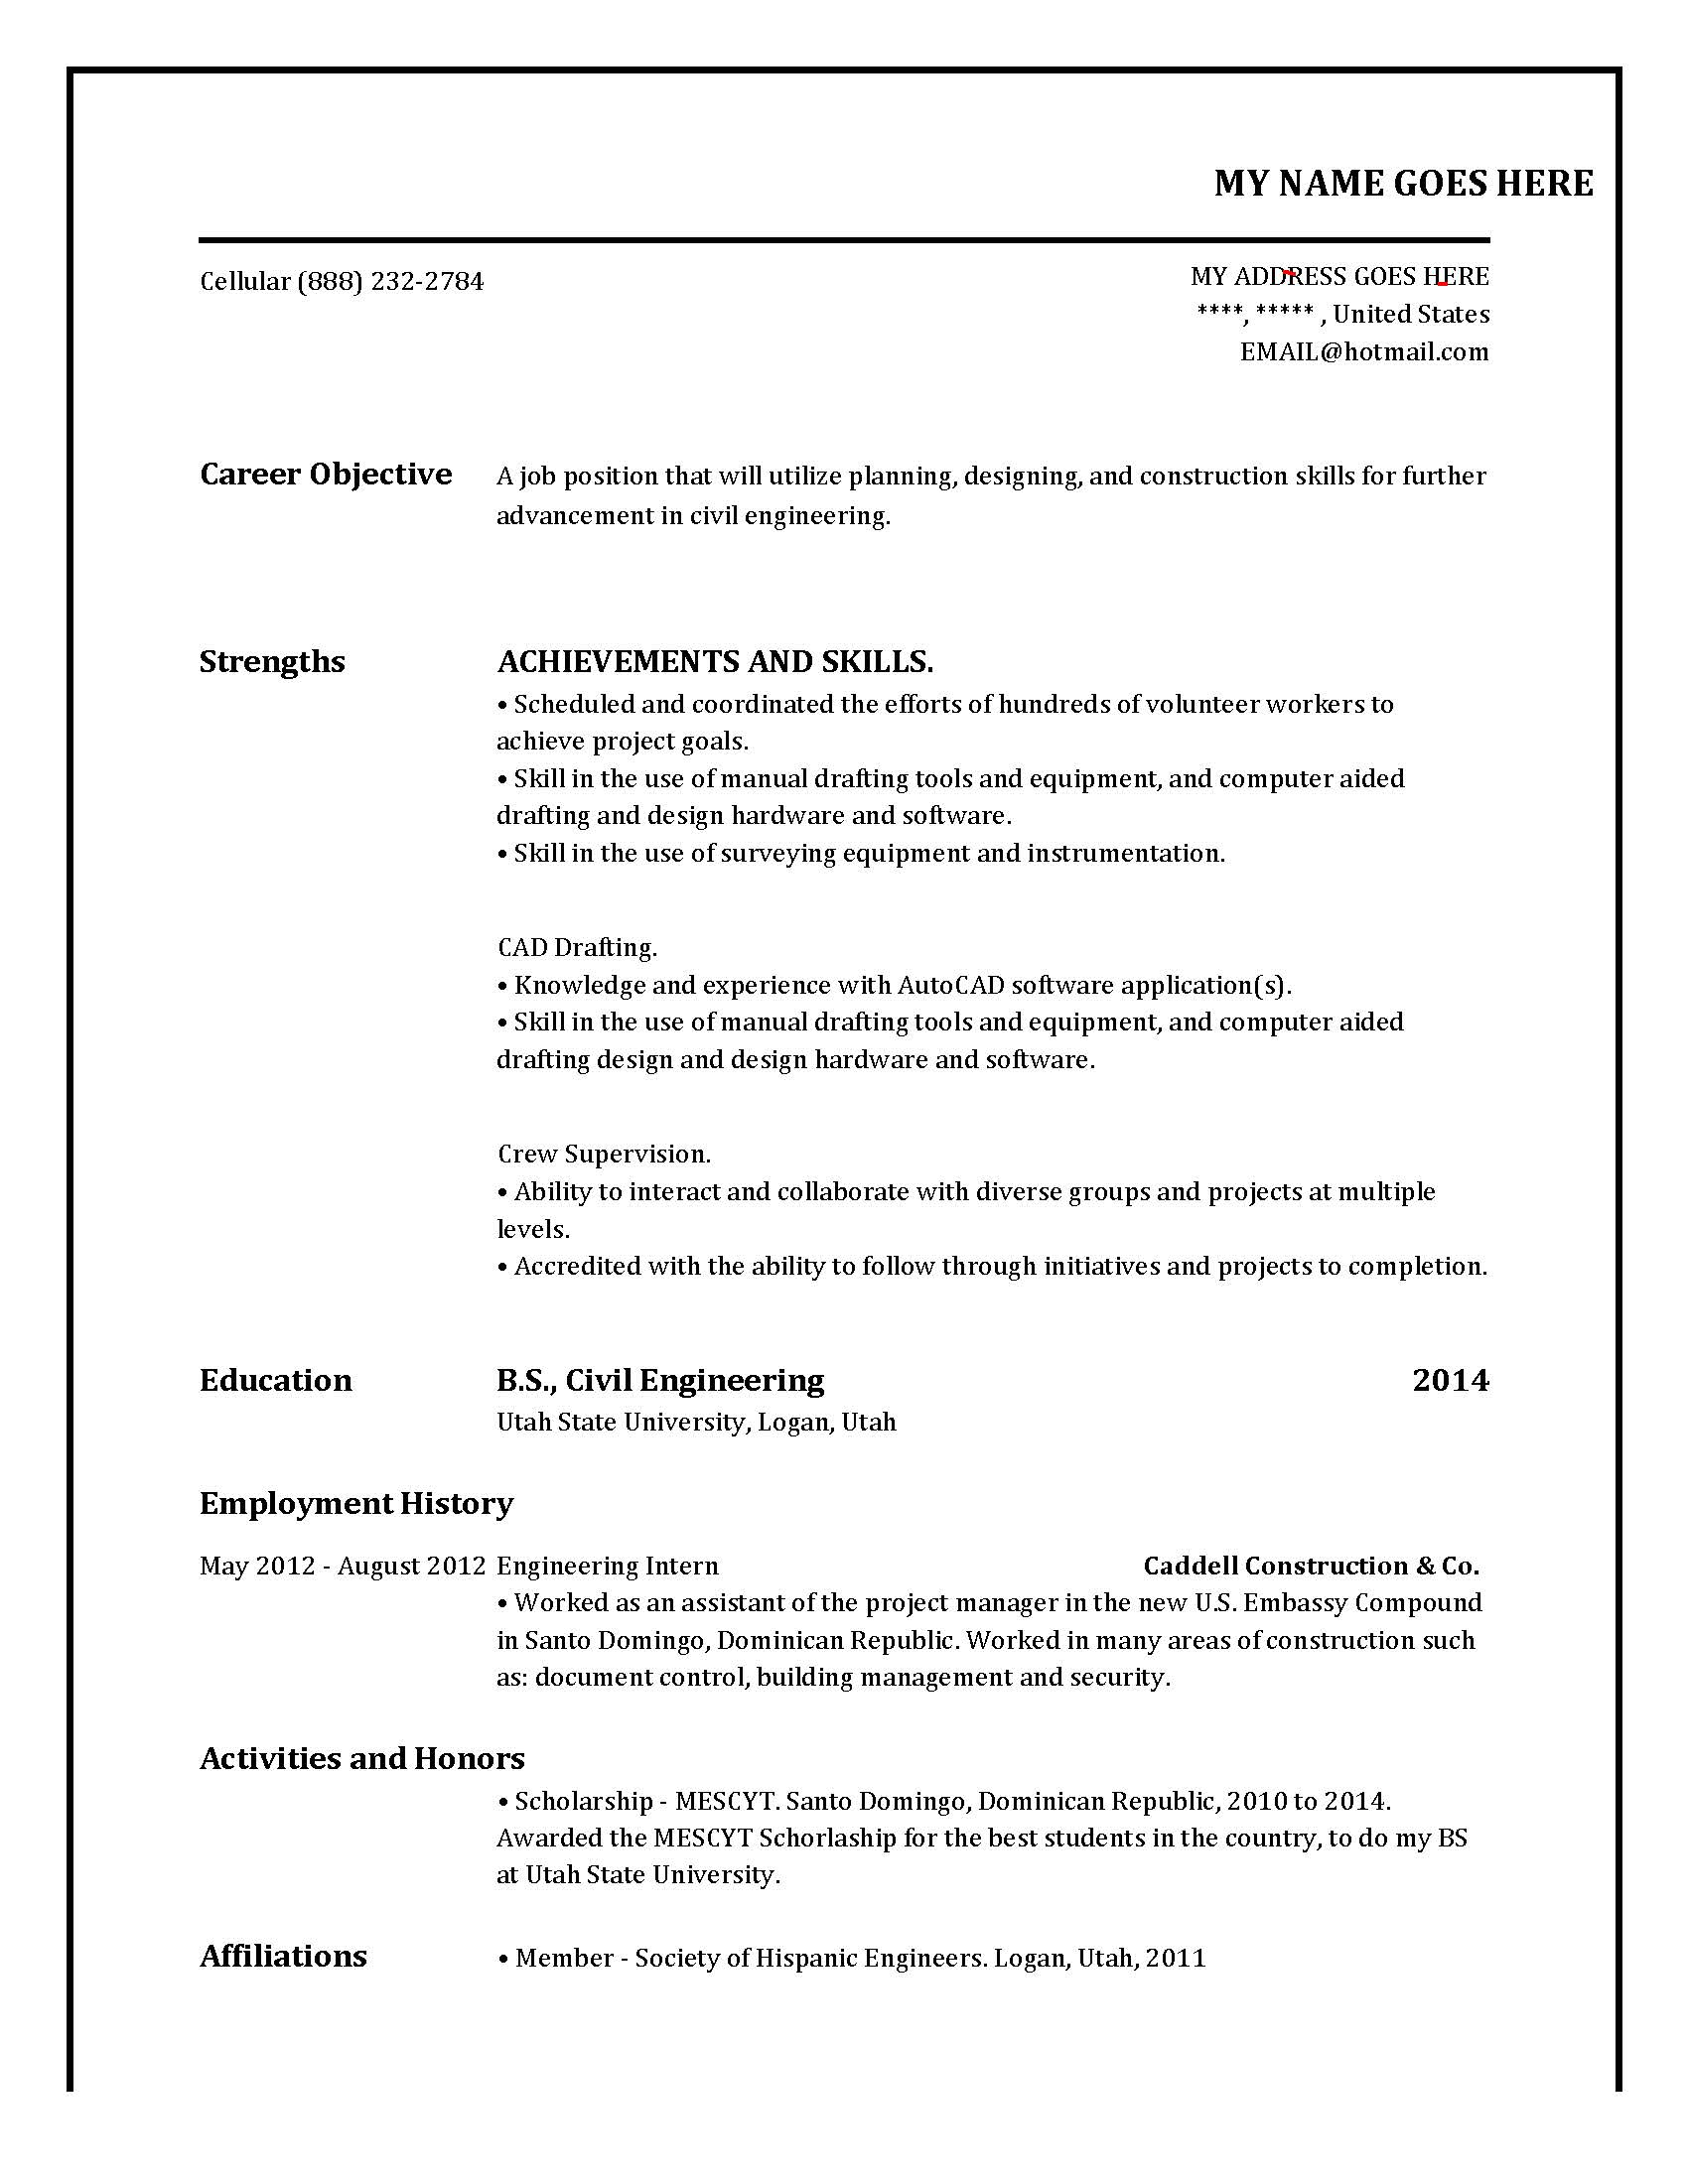 create resume monster let sample resumes inspire you monster career advice help me build my resume